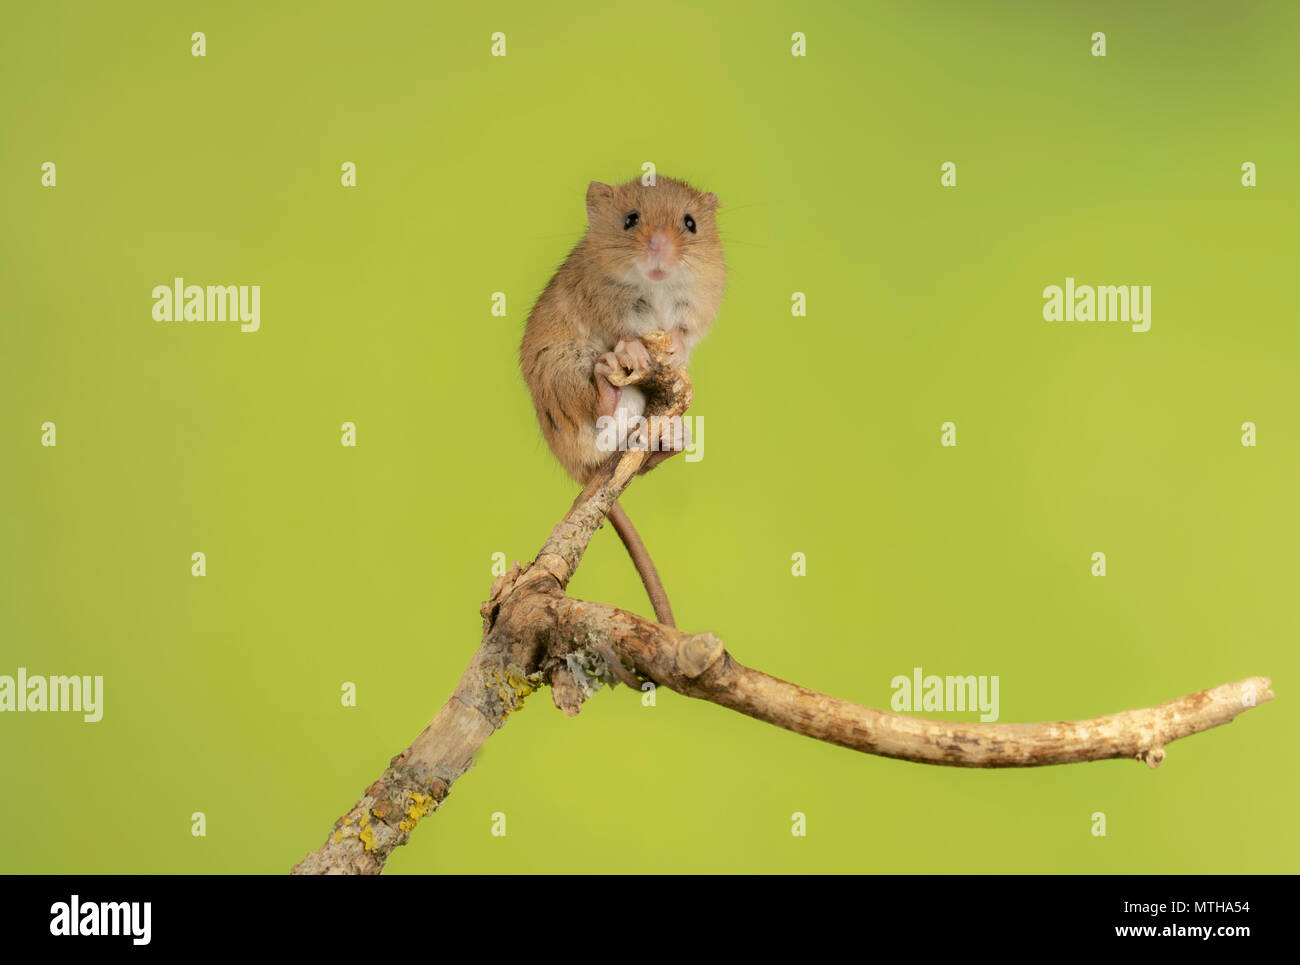 harvest mouse climbing in a studio set up Stock Photo